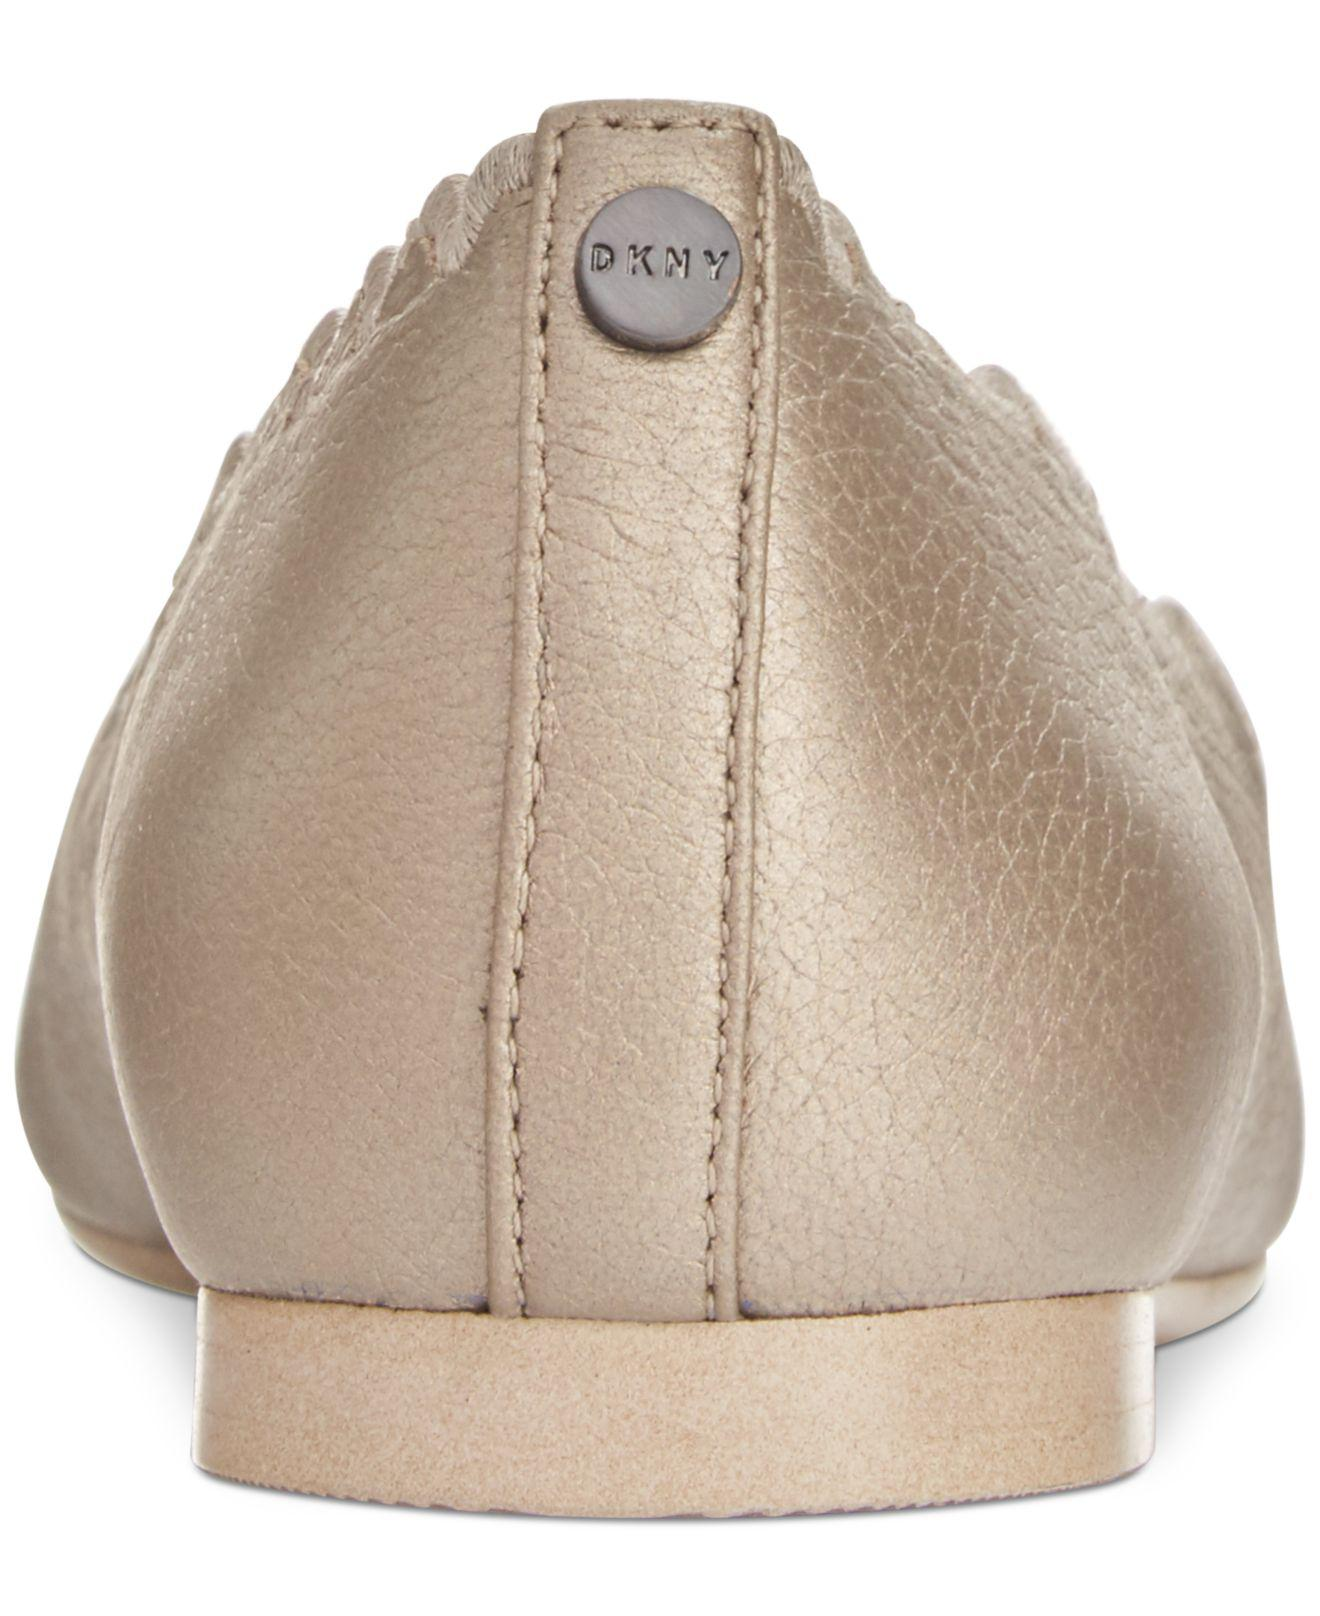 DKNY Leather Willow Flats in Khaki